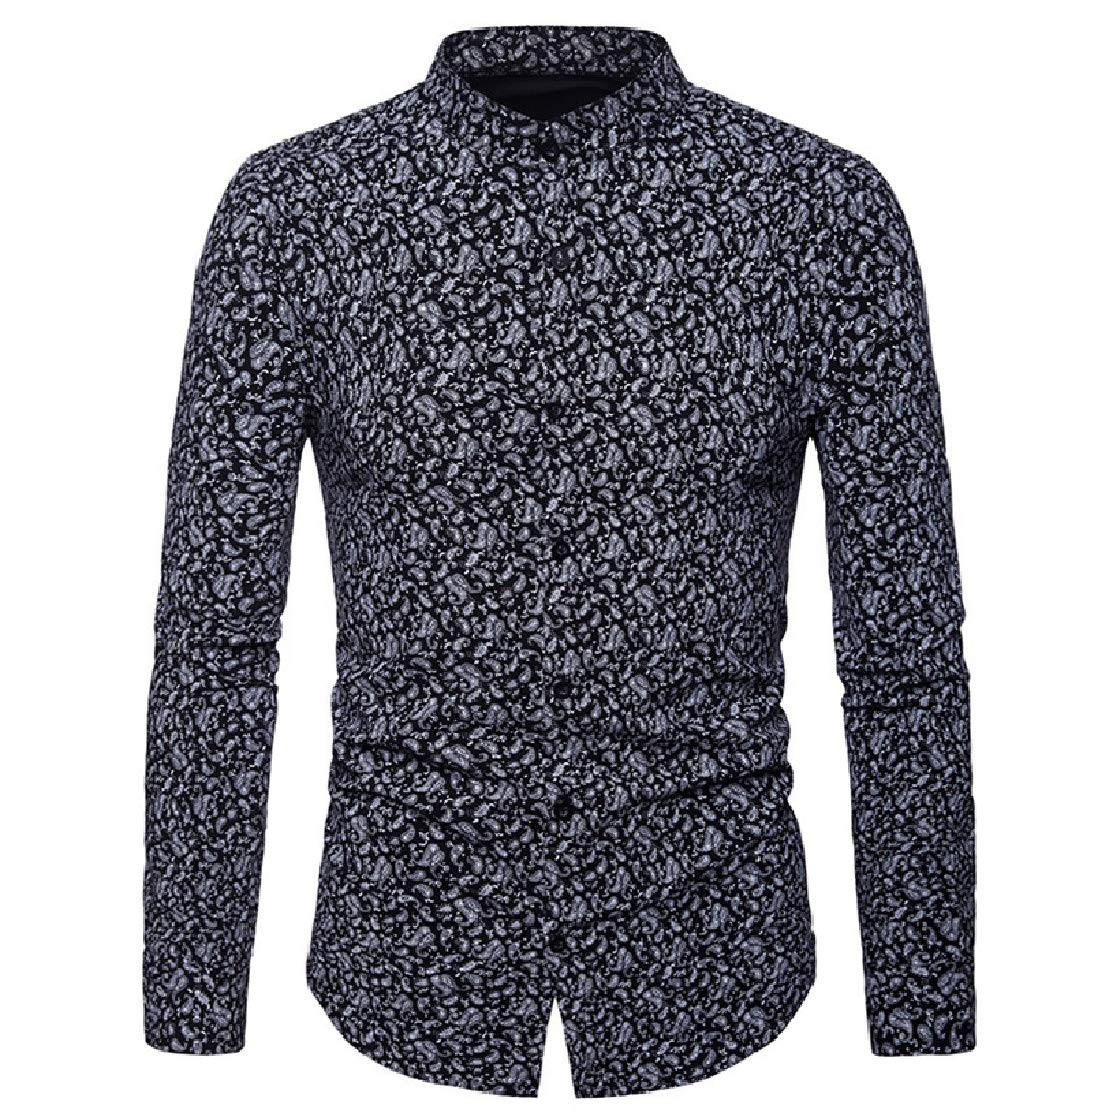 YUNY Mens Long-Sleeve Spring//Fall Floral Casual Stand Collar Shirt Black S